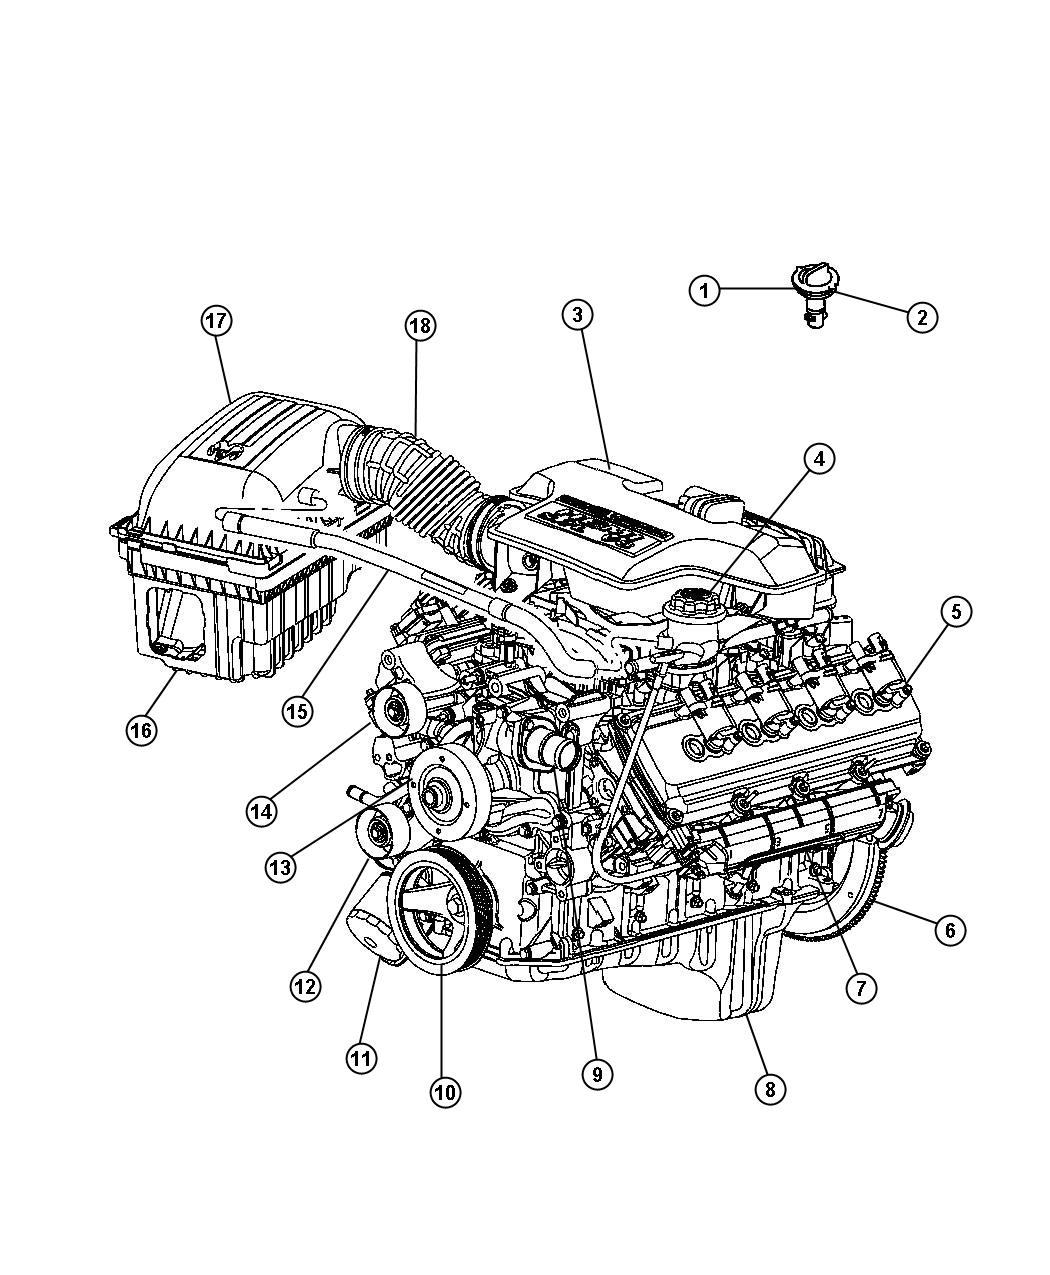 2003 dodge ram 5 7 hemi engine diagram